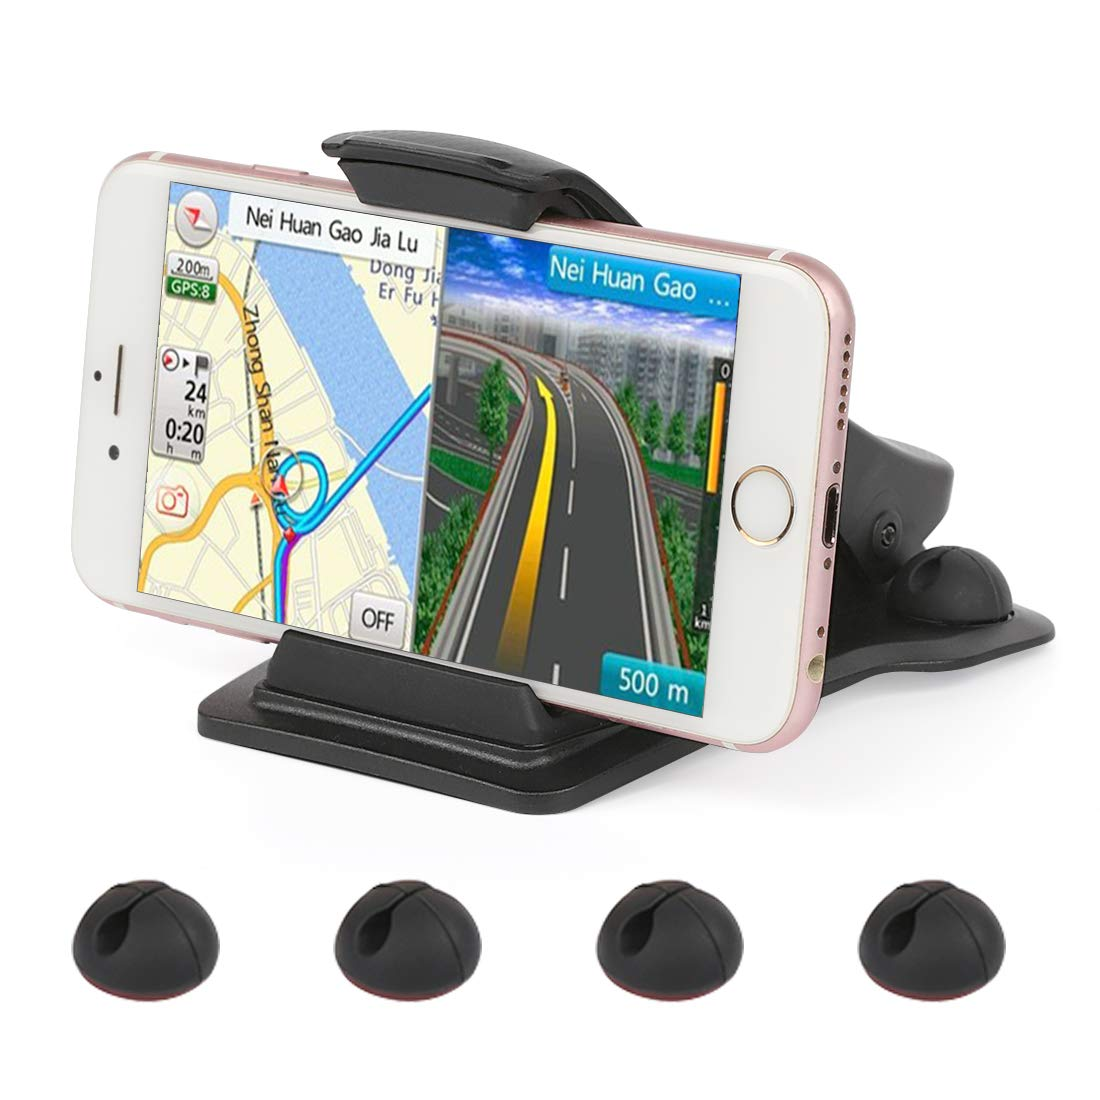 Car Phone Mount,Leelbox Phone Holder for Car Dashboard Cell Phone Holder Mount Stand with 5 Cable Clips and Strong Sticky Pads Universal for 3-6.5 inch Smartphone or GPS Devices - Black